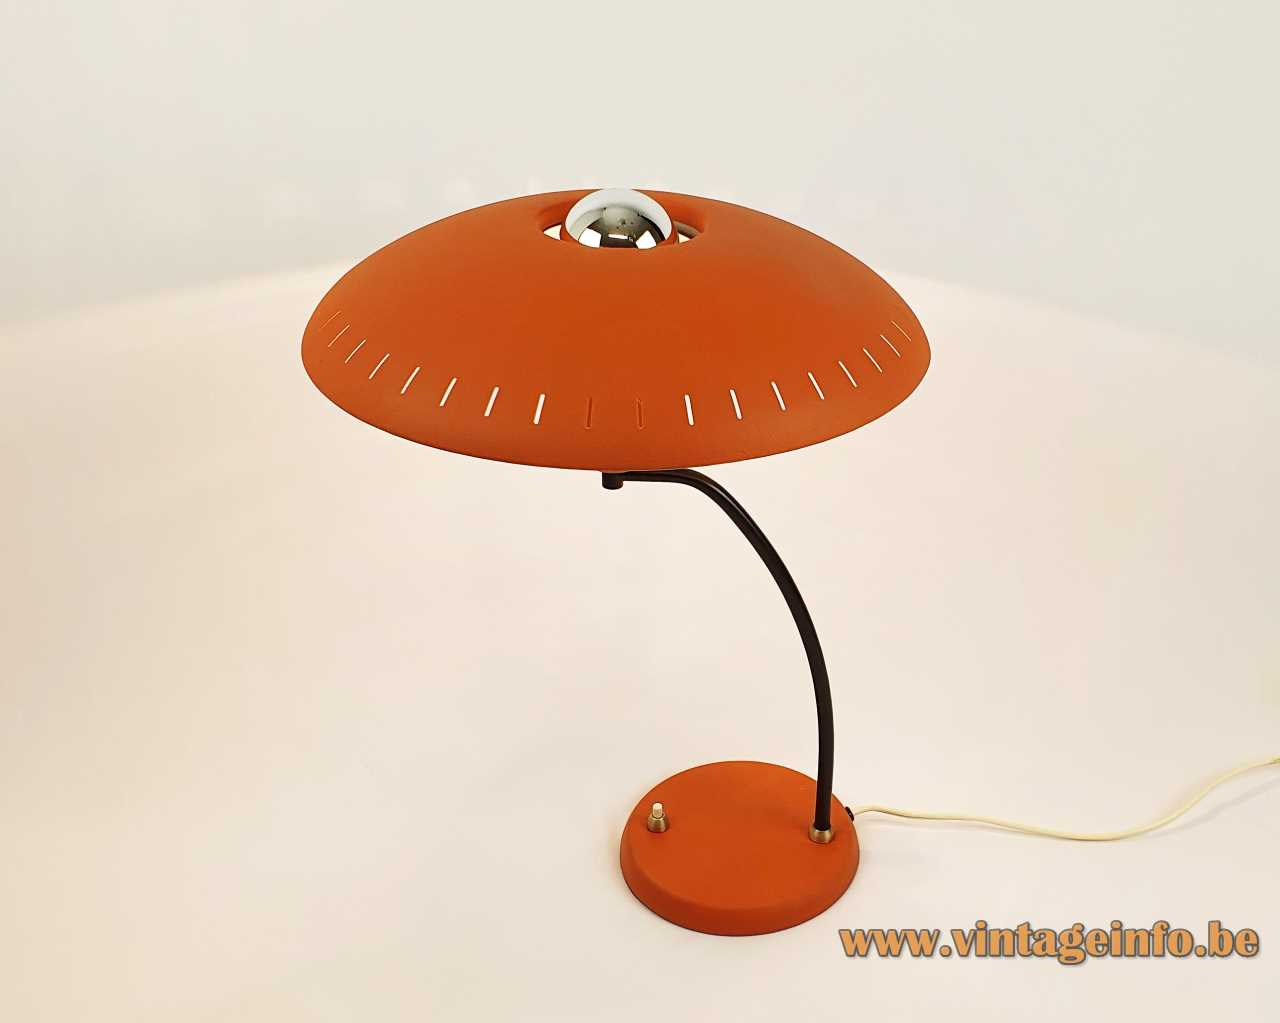 Philips aPhilips Junior desk lamp 1955 design: Louis Kalff orange mushroom lampshade brass curved rod 1950s 1960sJunior desk lamp design: Louis Kalff orange metal black curved rod mushroom lampshade 1950s 1960s